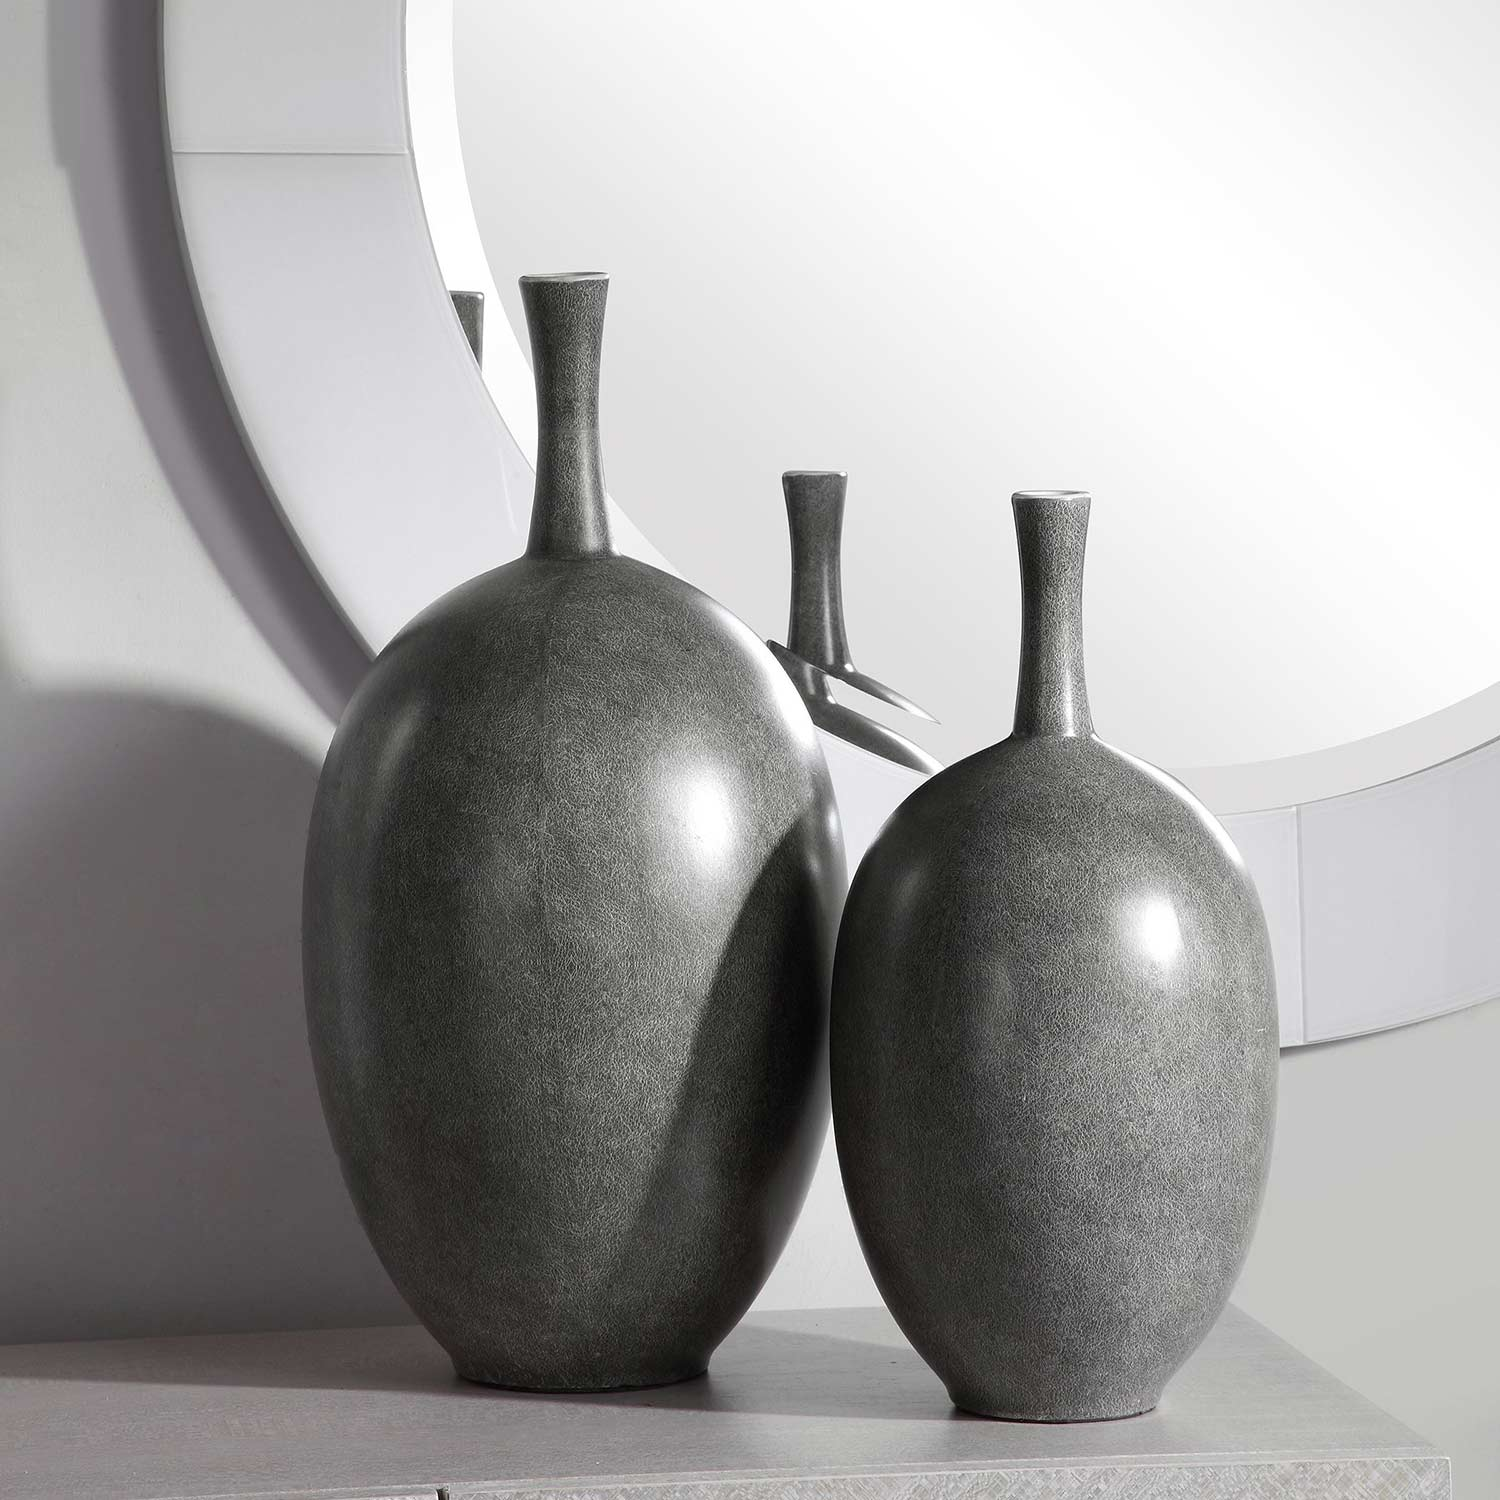 Uttermost Riordan Modern Vases - Set of 2